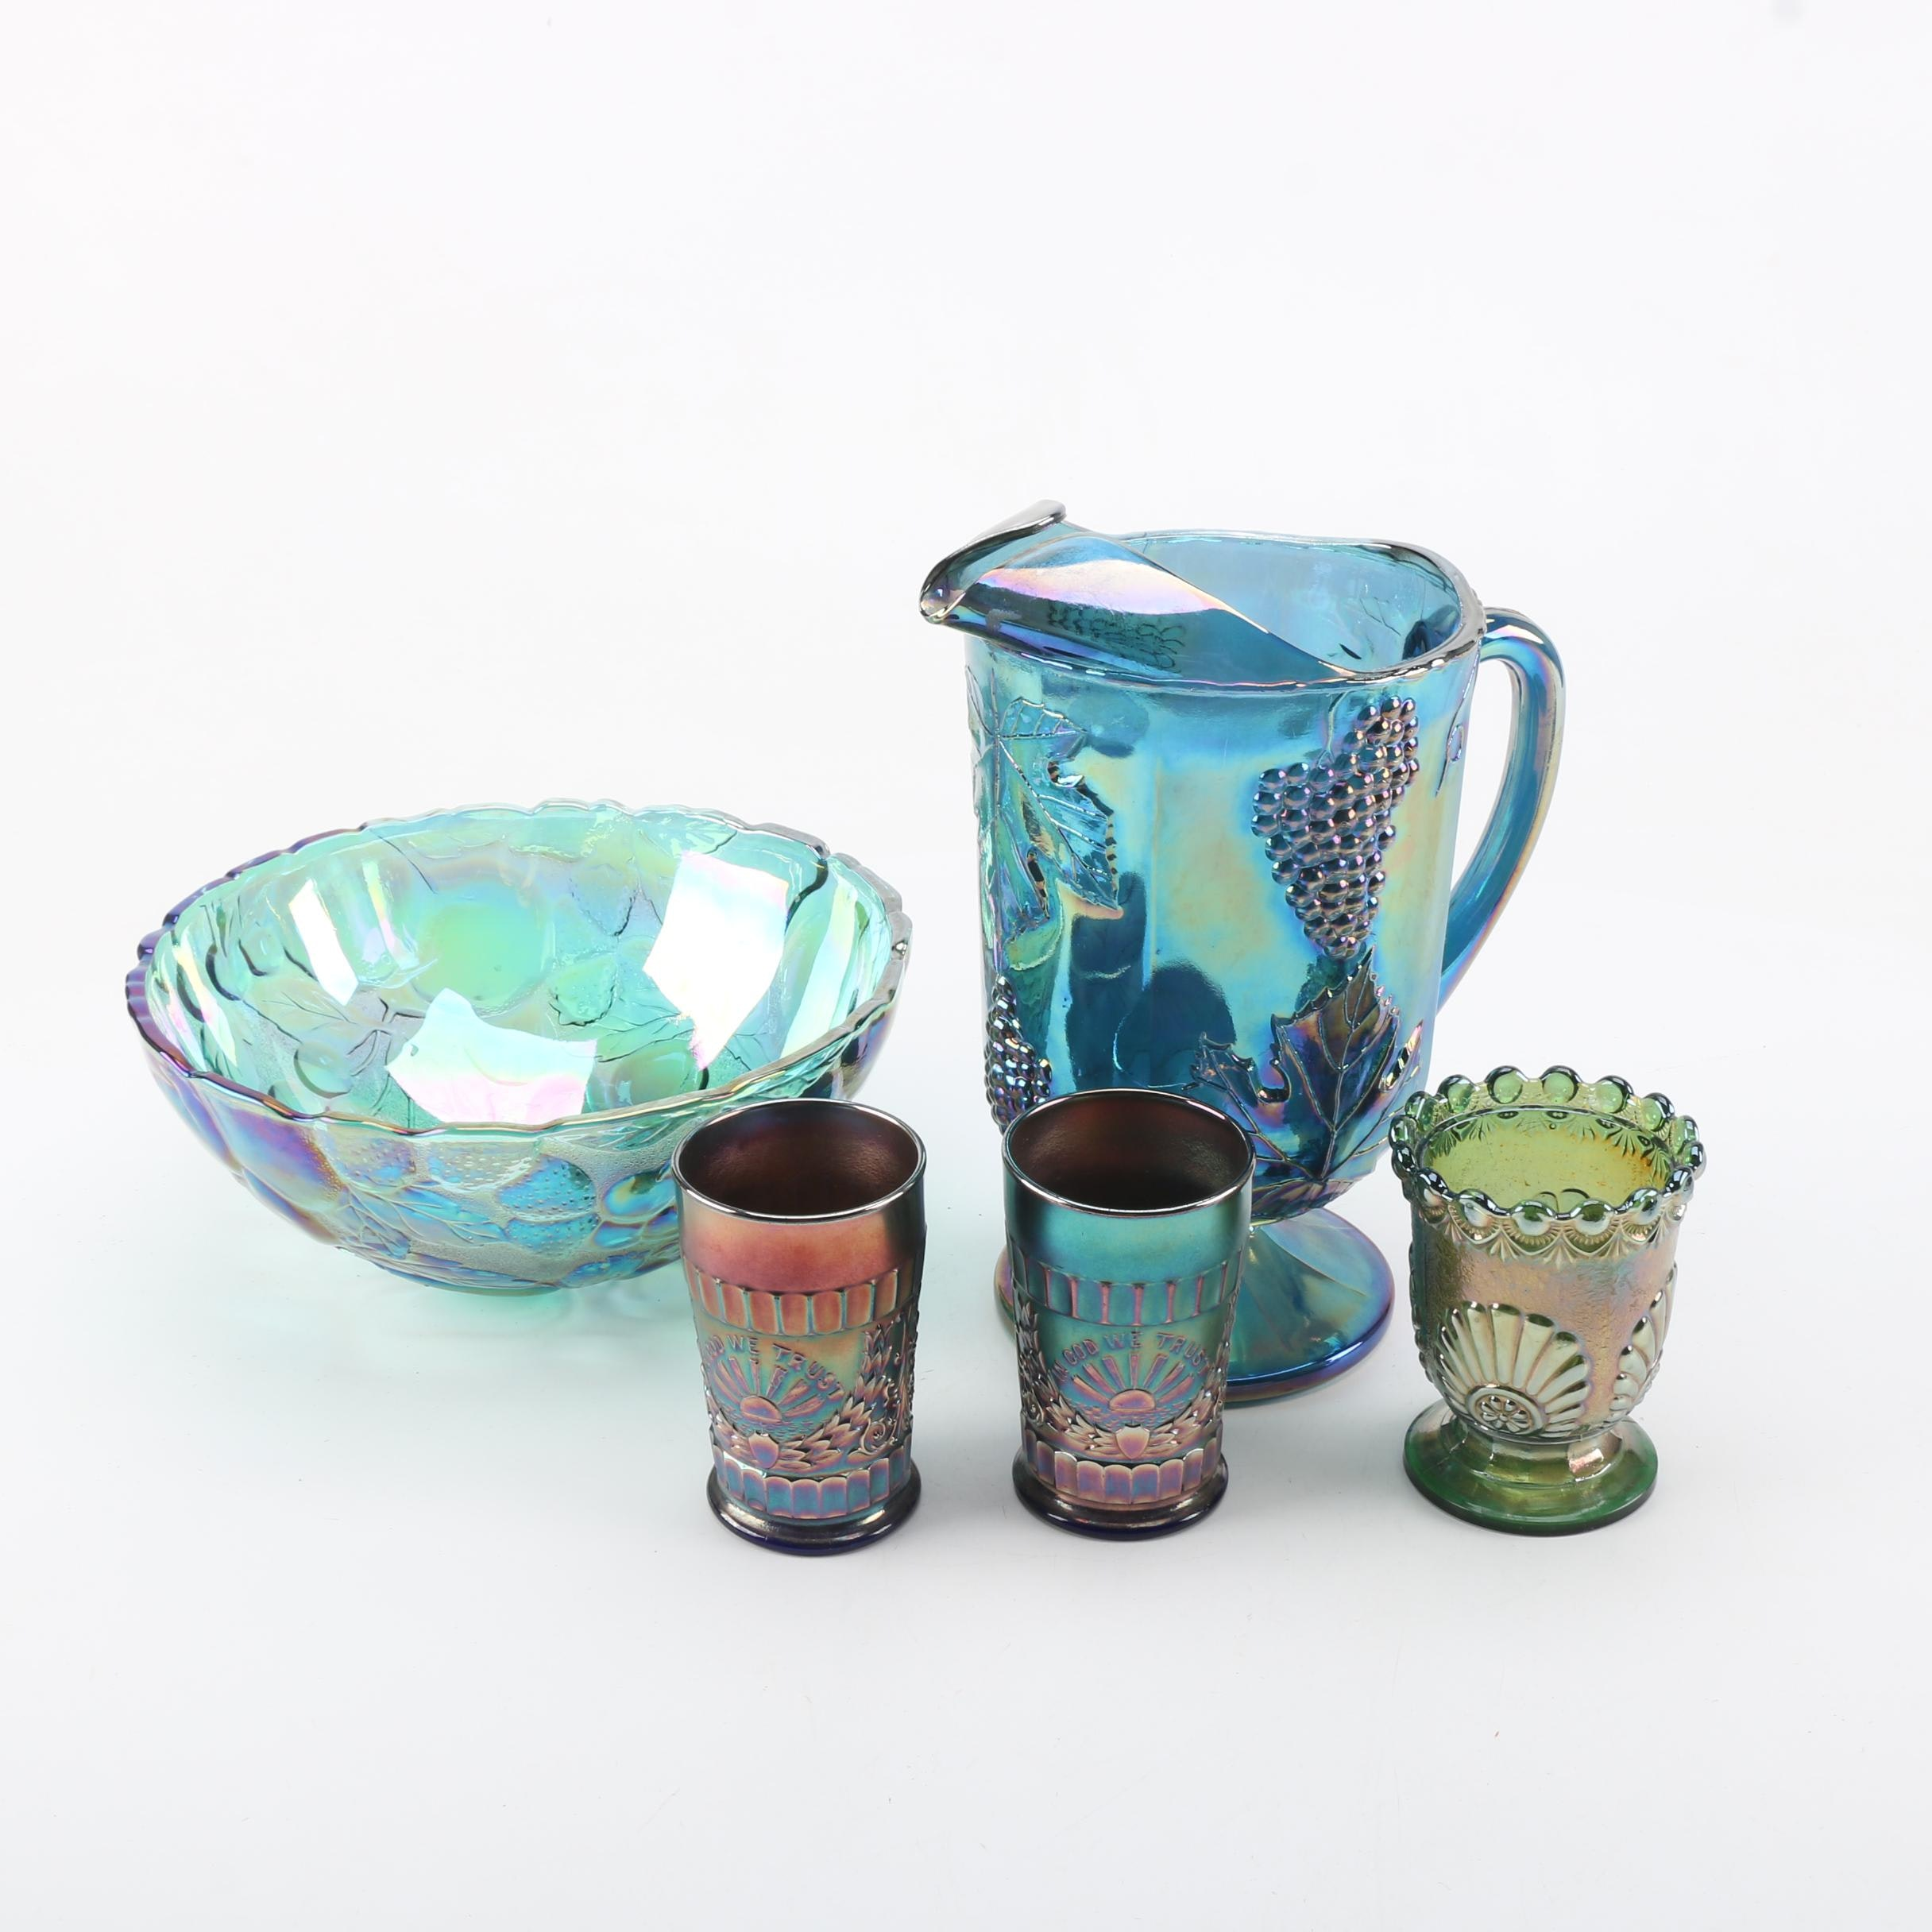 Carnival Glass Pitcher with Grapevine Relief and Other Carnival Glass Tableware